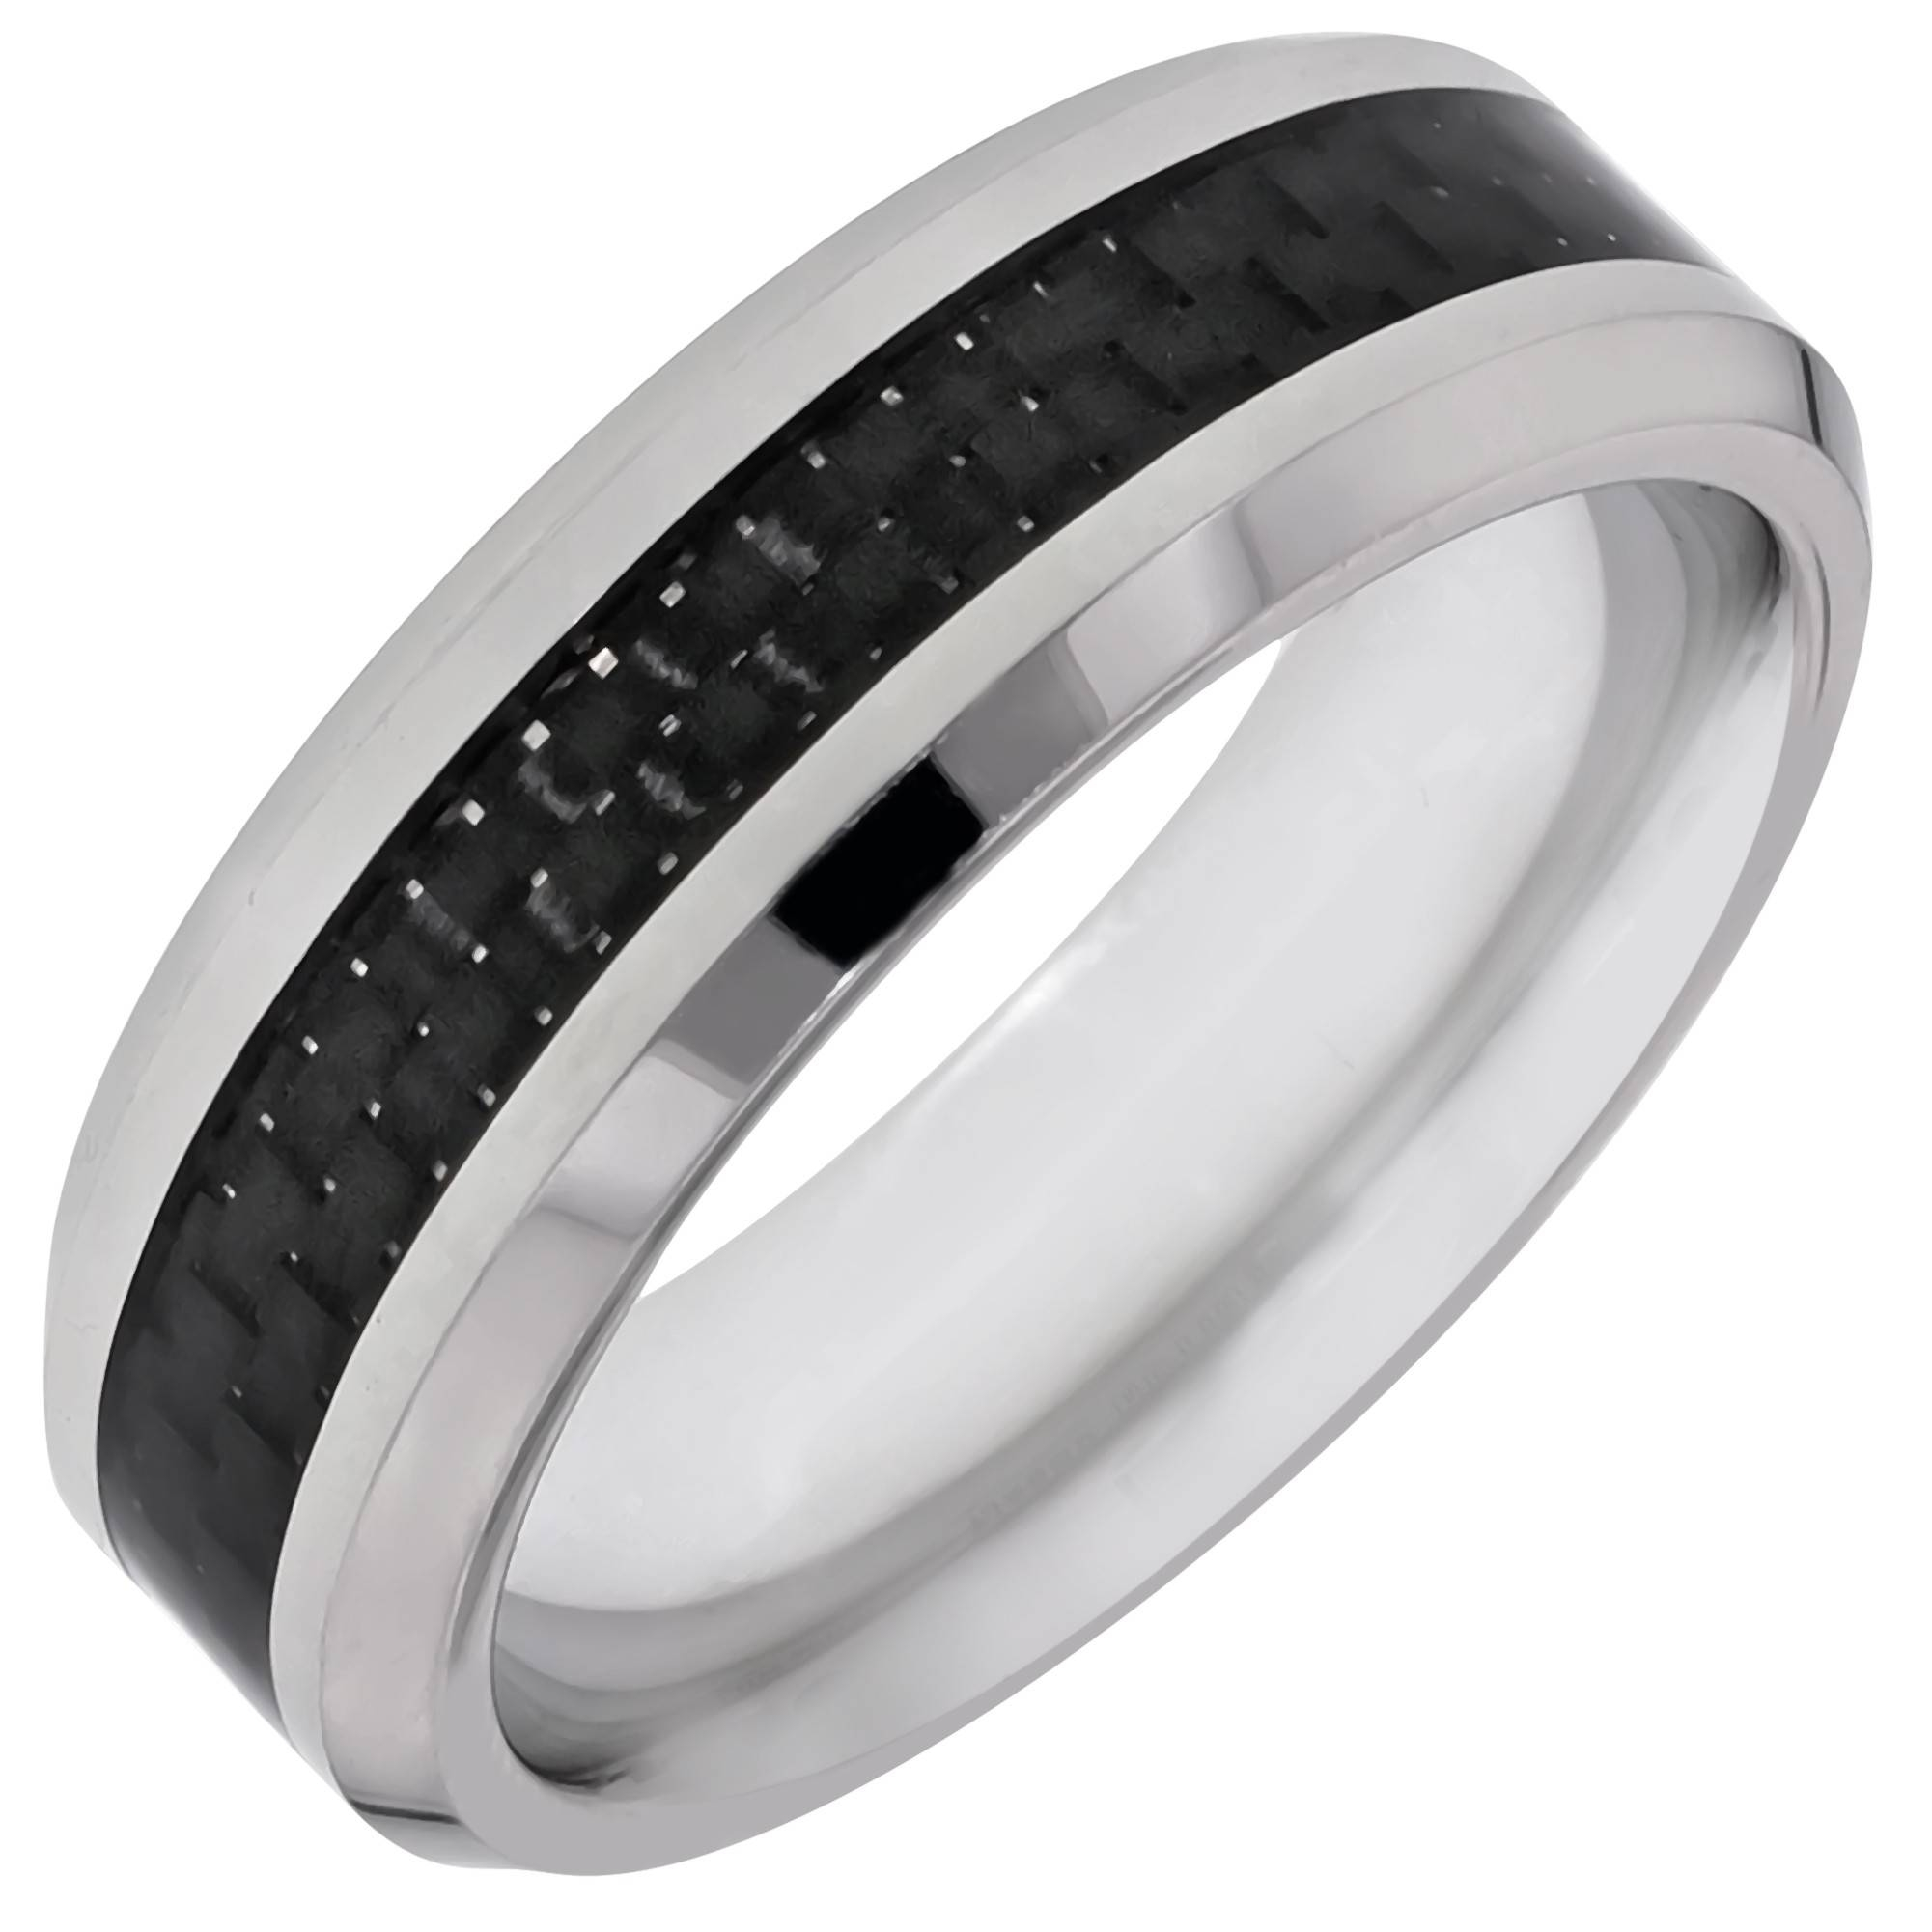 Mens Cobalt Chrome And Carbon Fiber Comfort Fit Wedding Band (7Mm) Regarding 7Mm Titanium Wedding Bands (View 6 of 15)